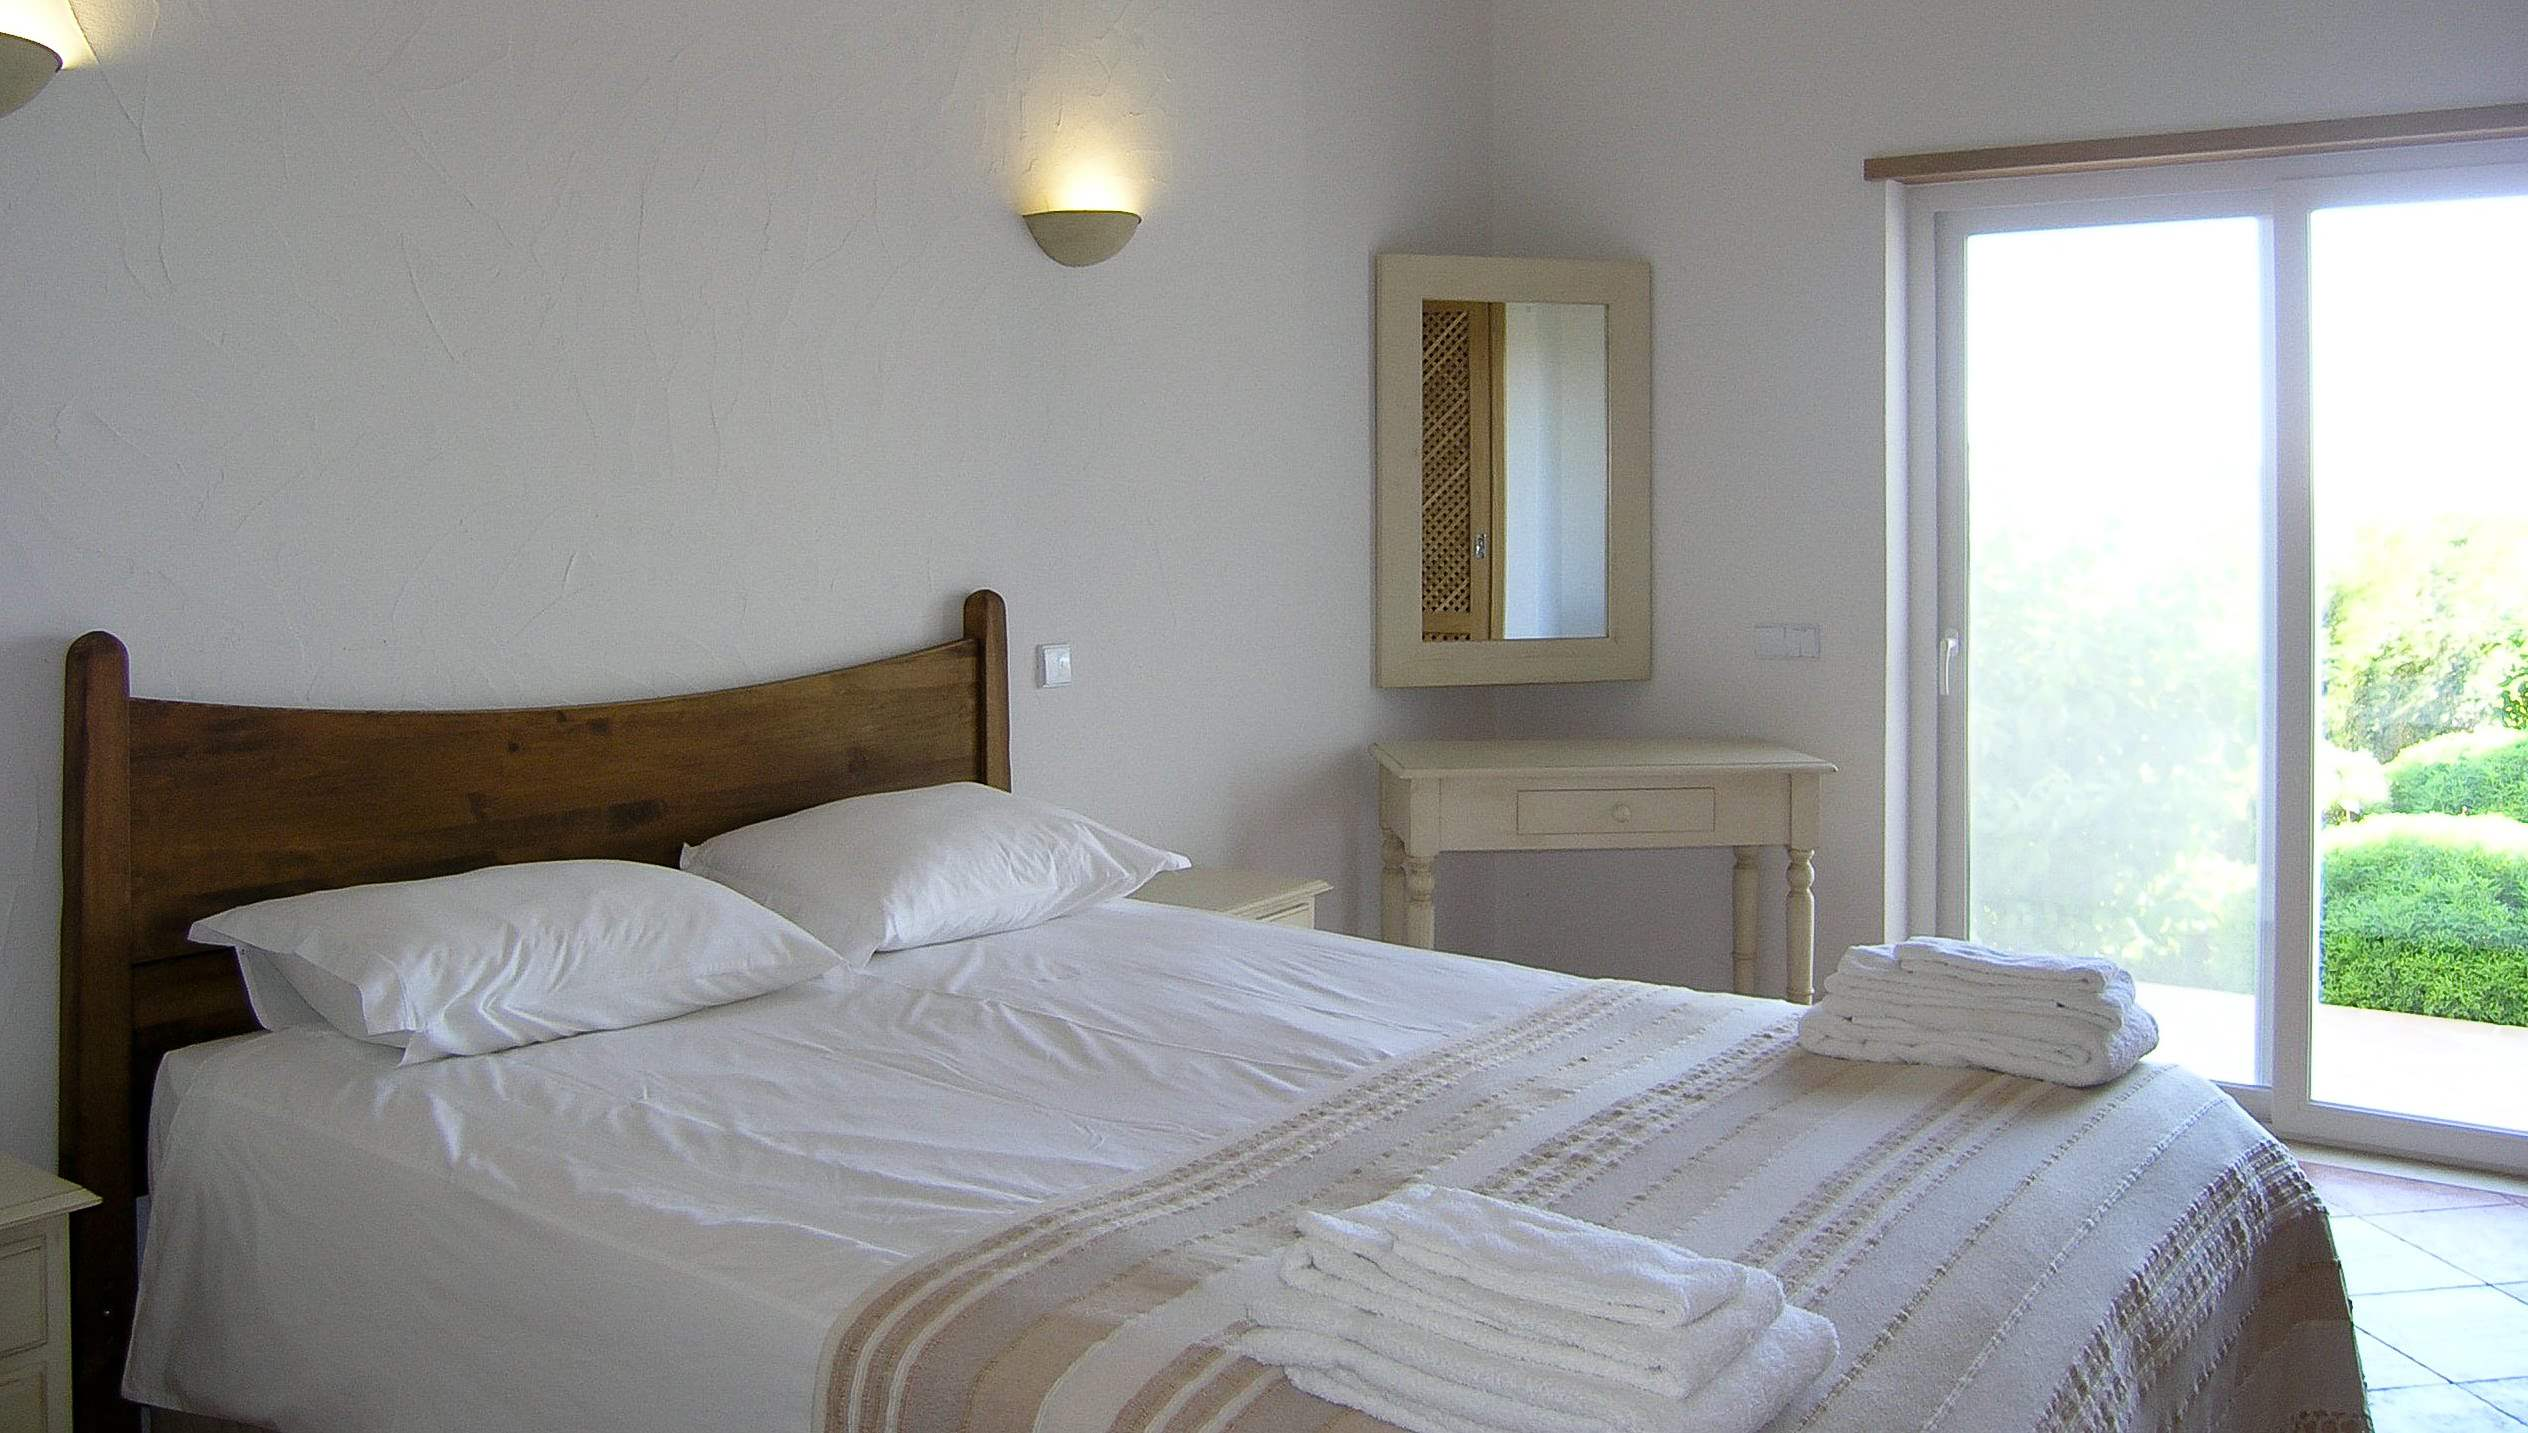 Martinhal Luxury Villa No.10, Three Bedroom Villa, 3 bedroom villa in Martinhal Sagres, Algarve Photo #10